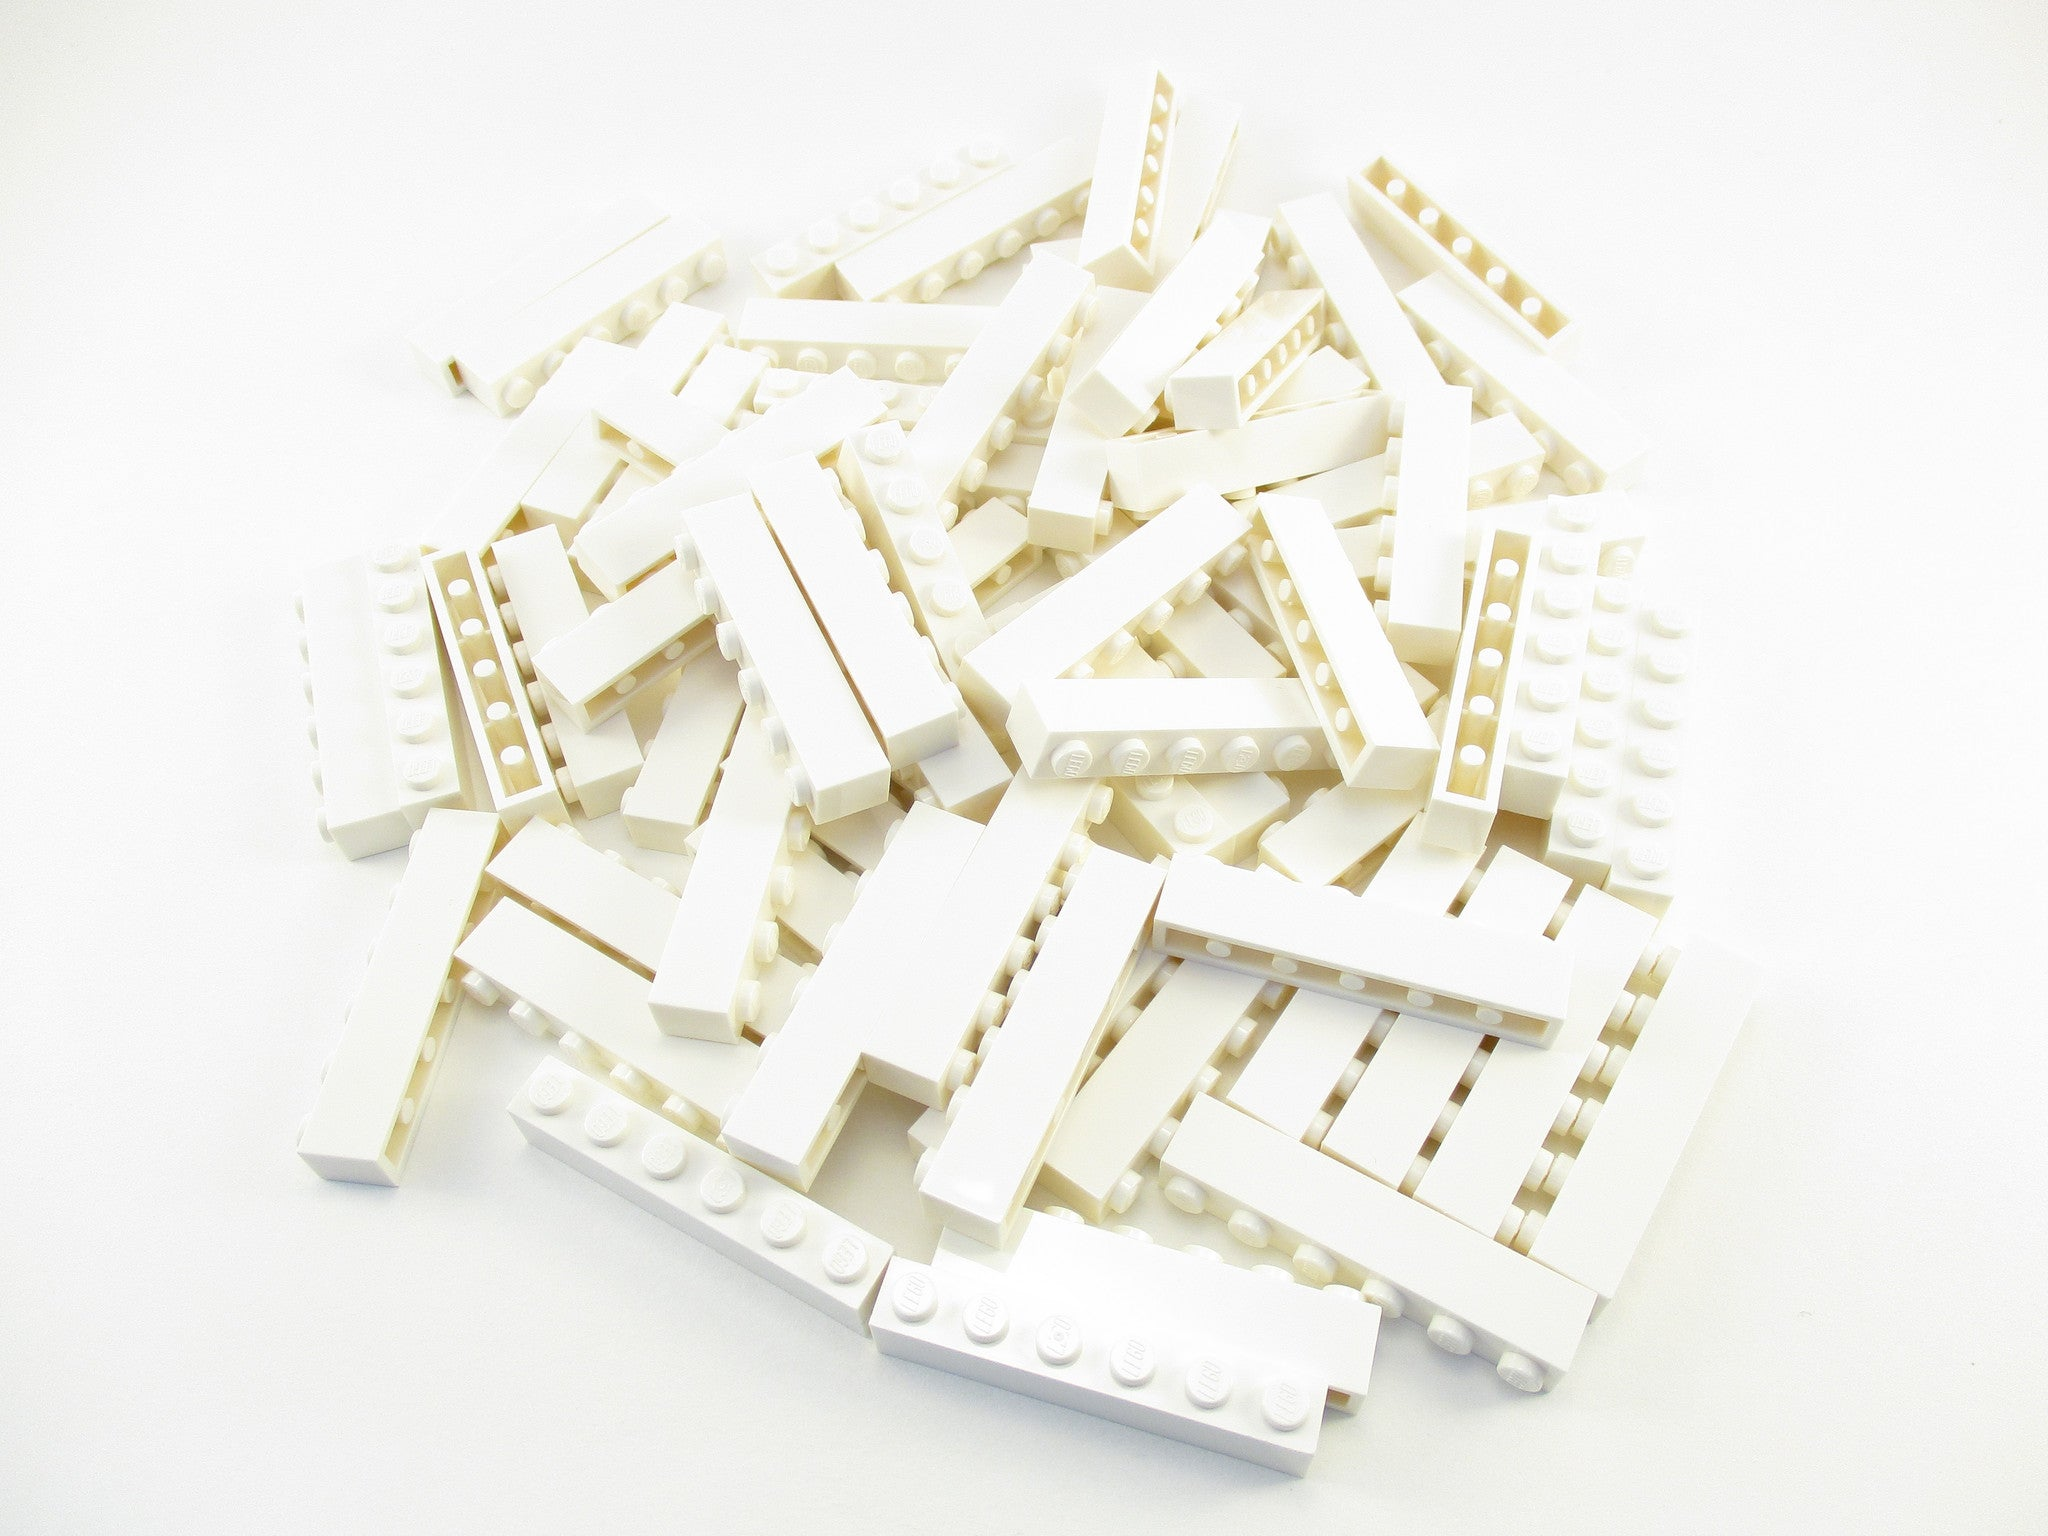 LEGO White Brick 1x6 Lot of 100 Parts Pieces 3009